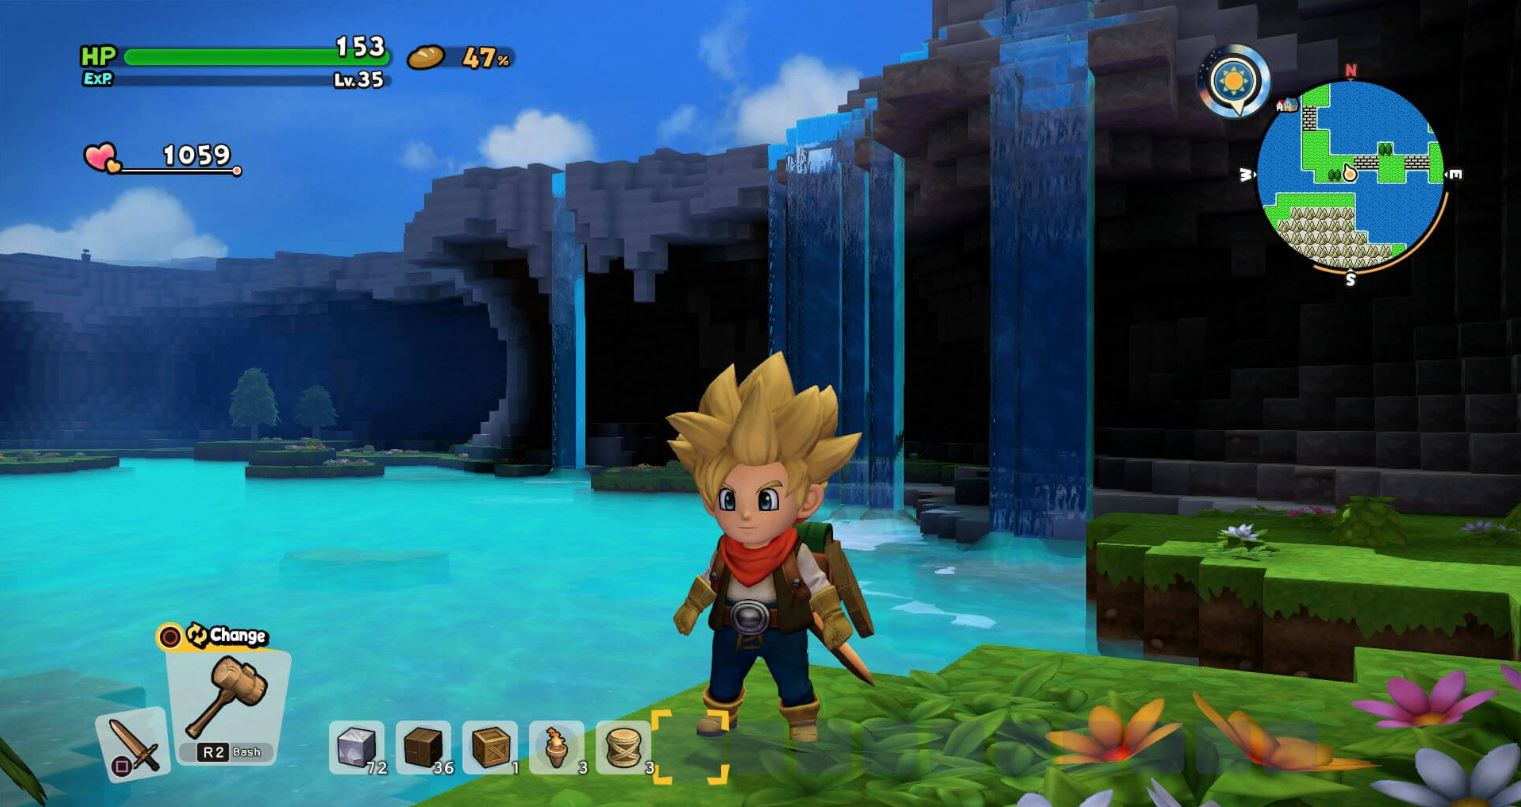 How to build a Steamy Spa in Dragon Quest Builders 2